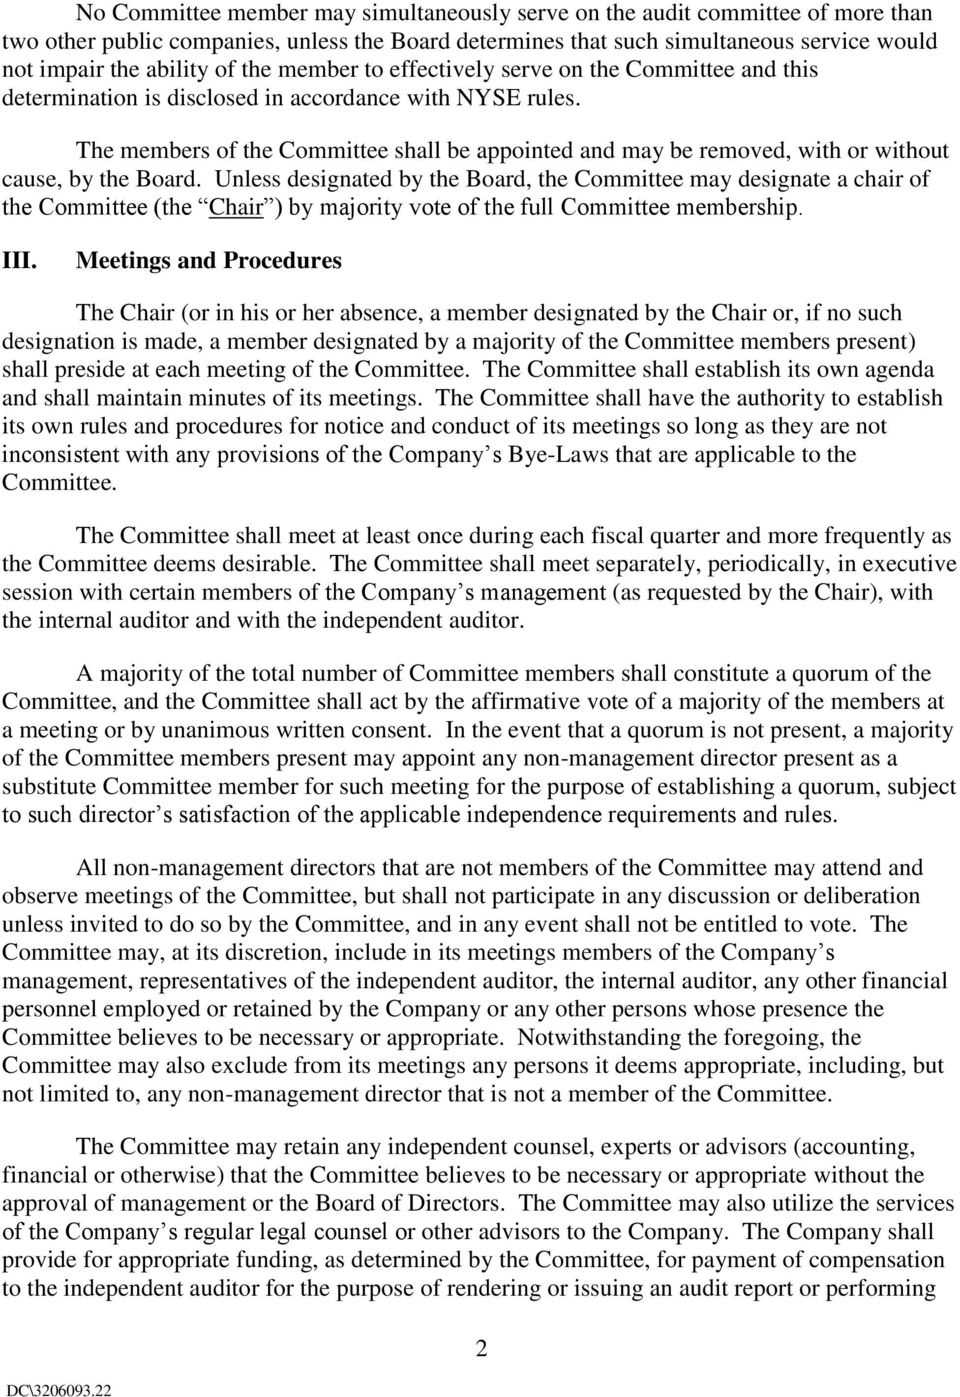 The members of the Committee shall be appointed and may be removed, with or without cause, by the Board.